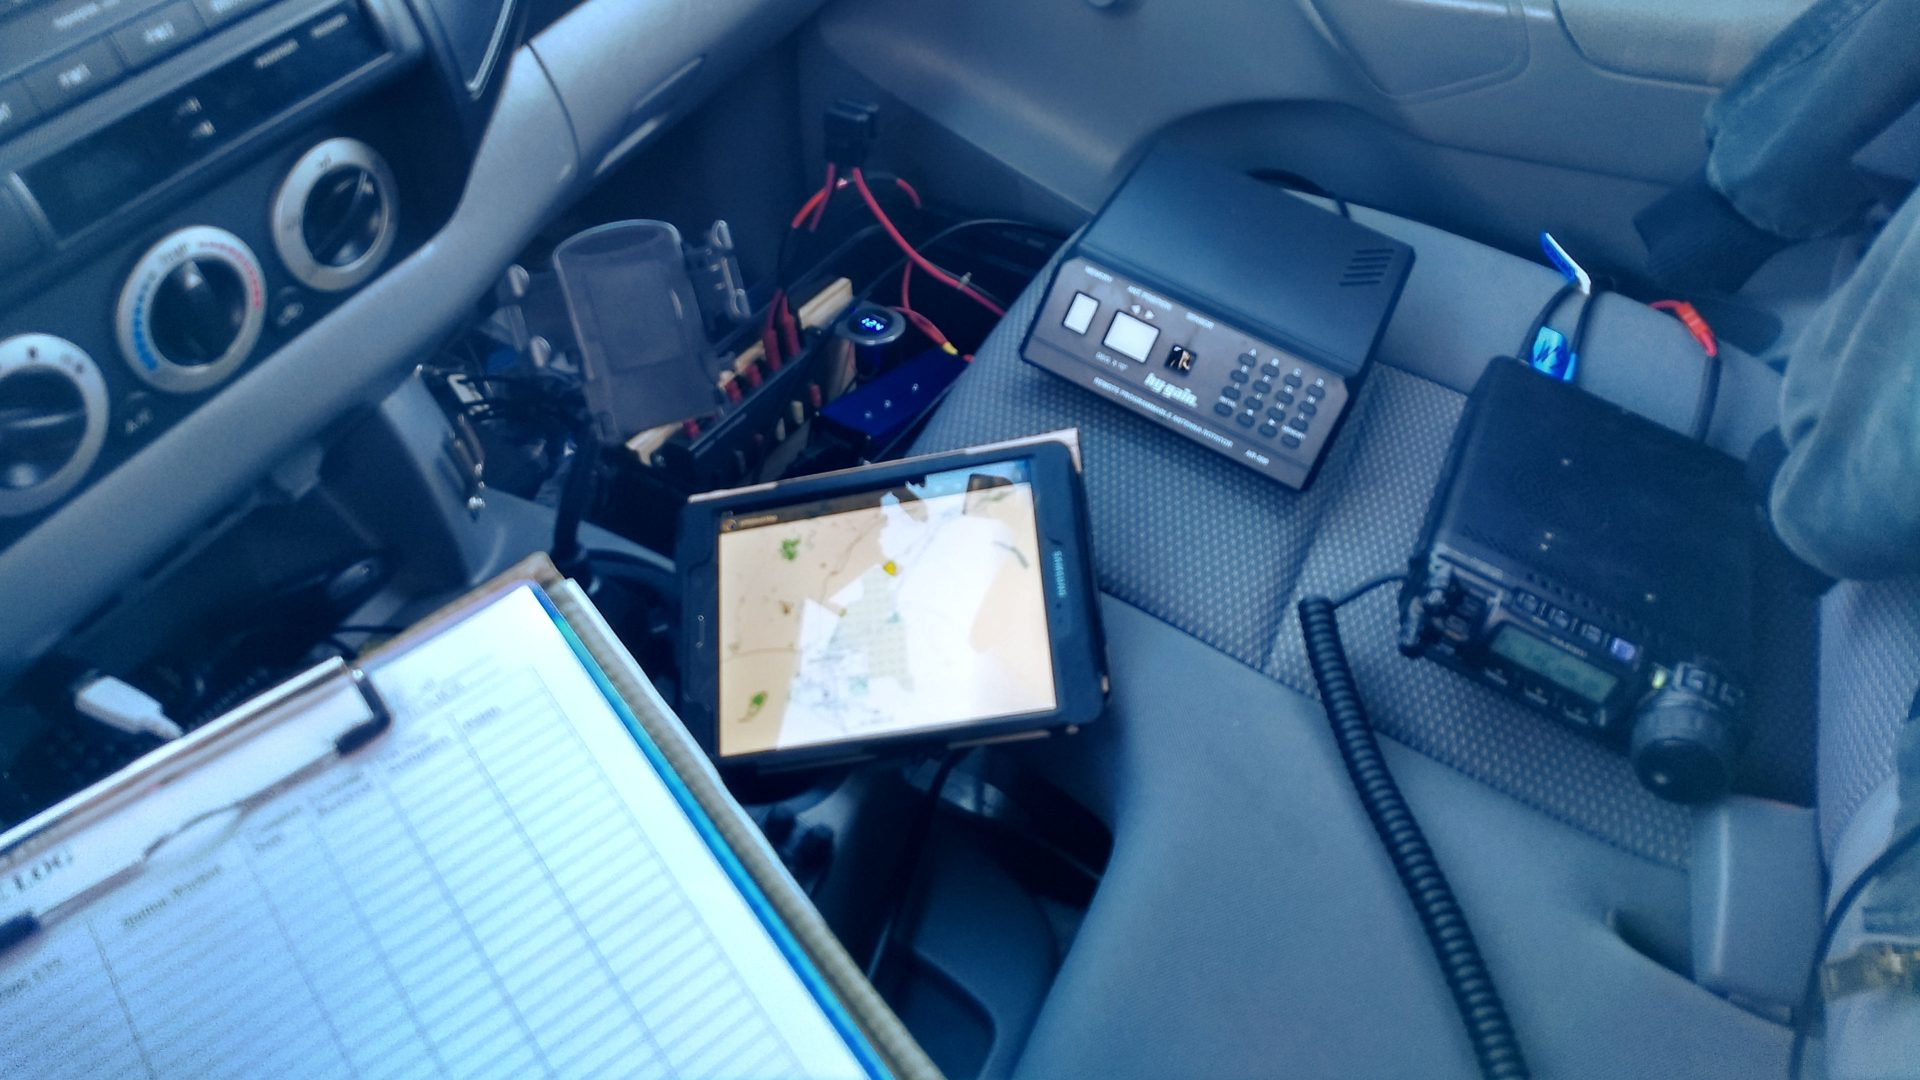 Interior of a truck with a radio, rotator, and tablet